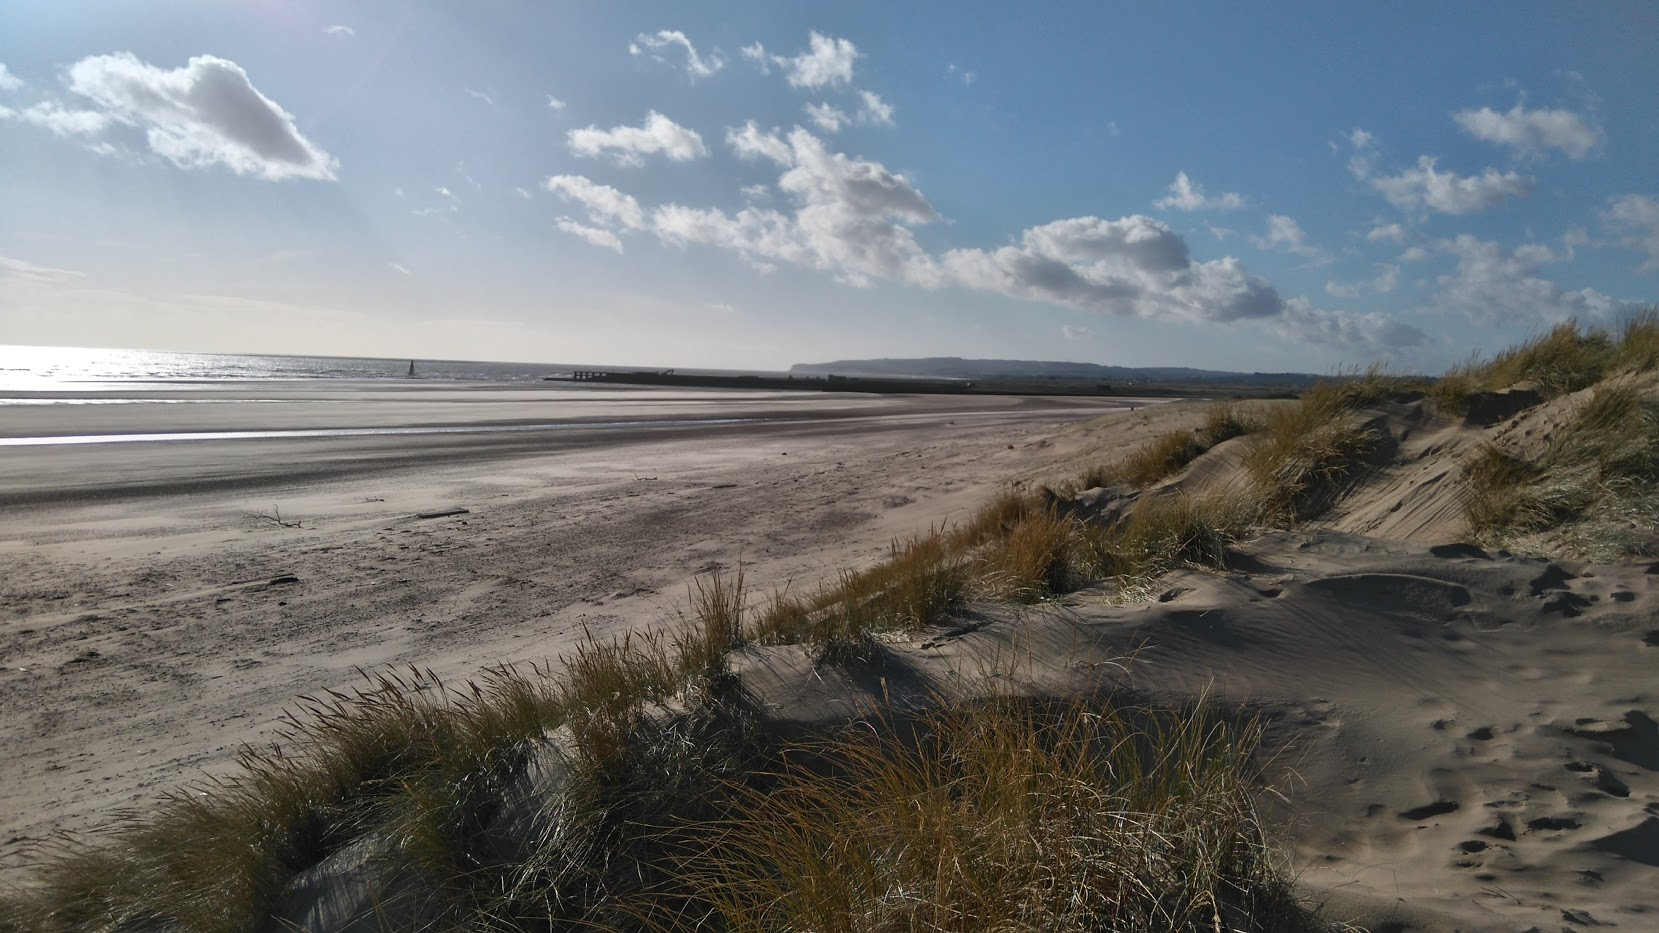 Camber sands - a winter scene